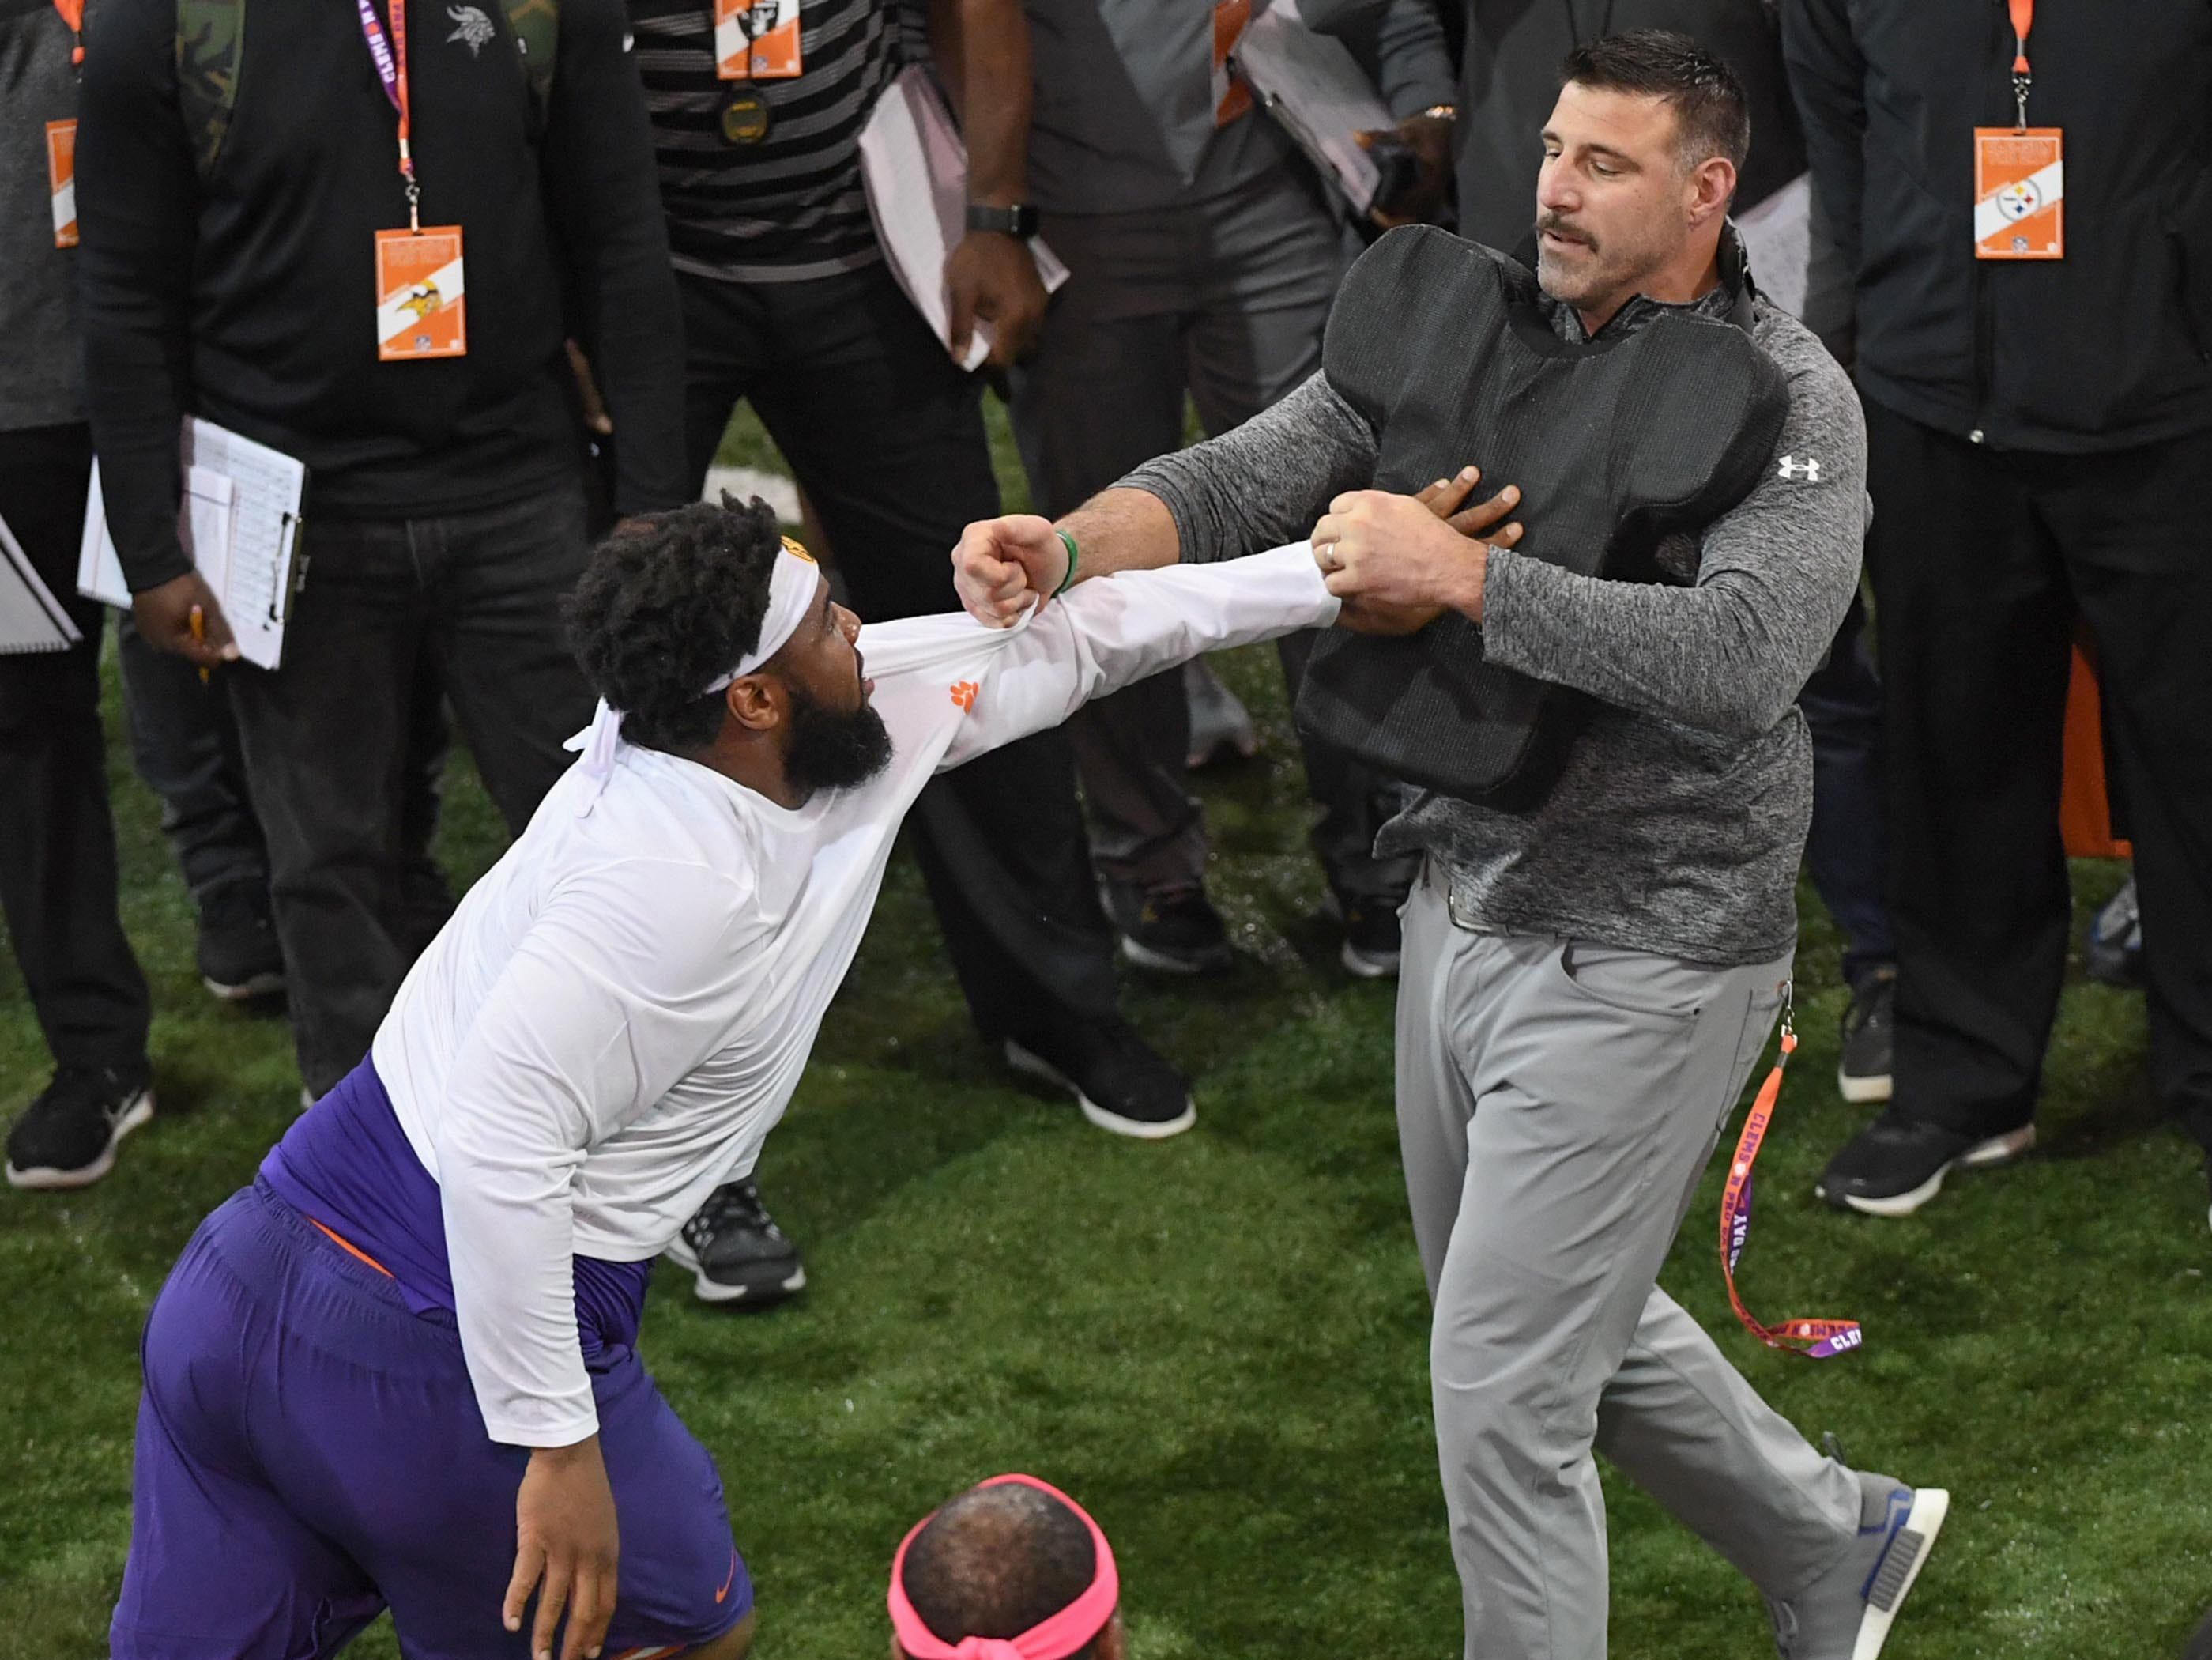 Defensive lineman Christian Wilkins in a drill with Mike Vrabel during Clemson pro day at the Poe Indoor Facility in Clemson Thursday, March 14, 2019.